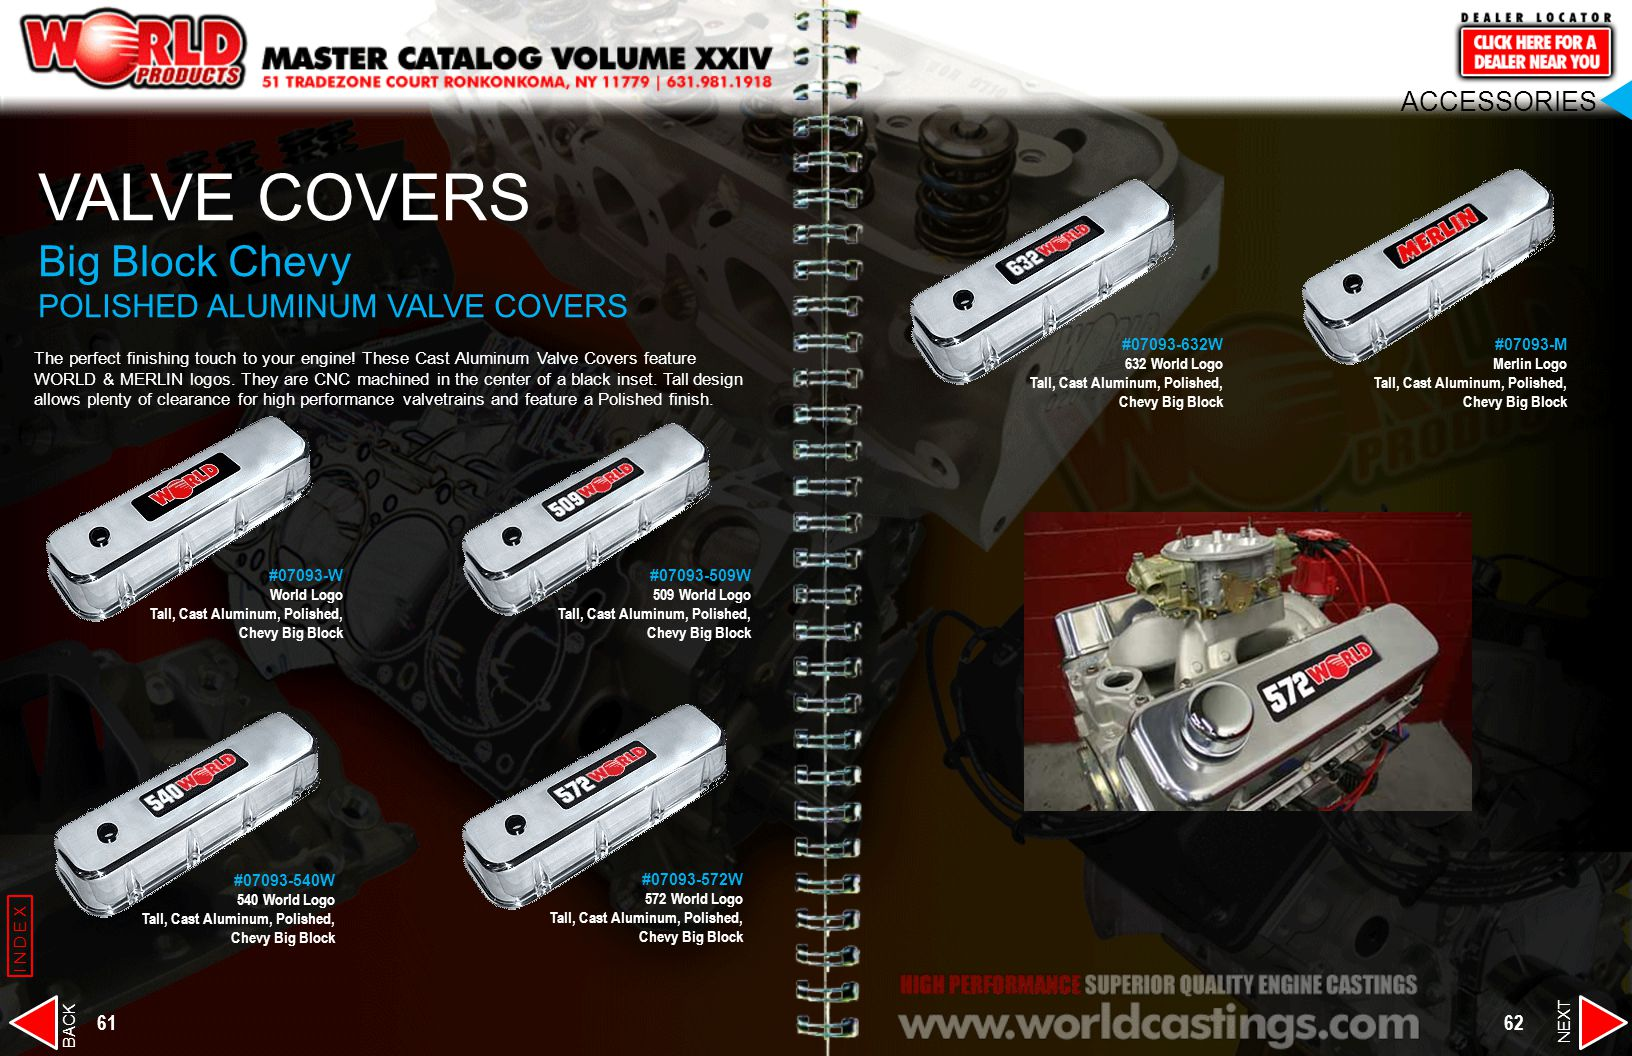 VALVE COVERS Big Block Chevy POLISHED ALUMINUM VALVE COVERS